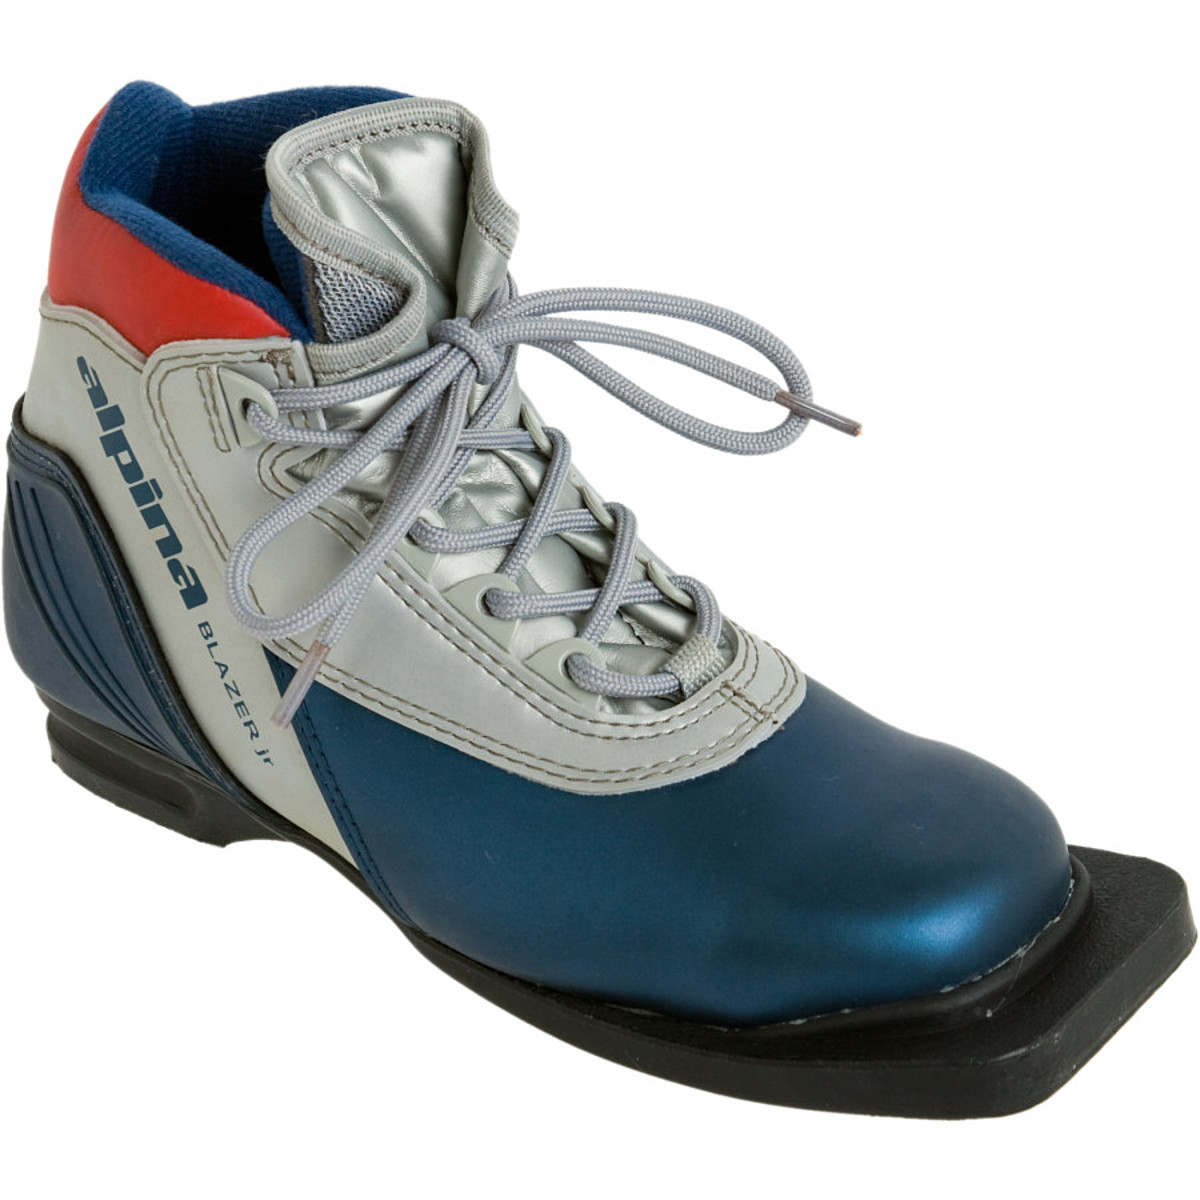 photo: Alpina Kids' Blazer nordic touring boot